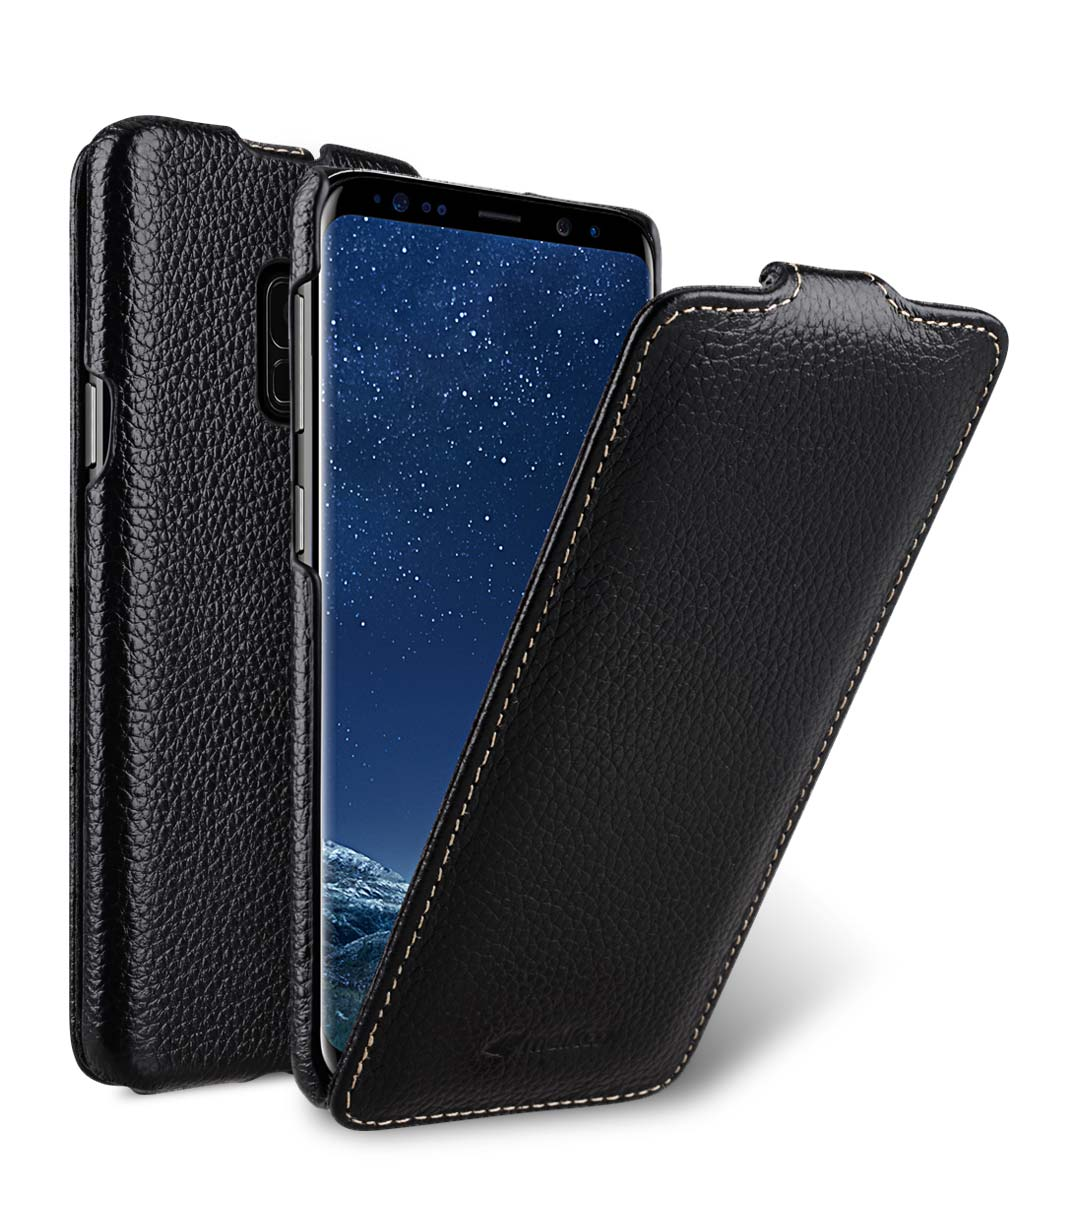 Melkco Premium Leather Case for Samsung Galaxy S9 - Jacka Type (Black LC)